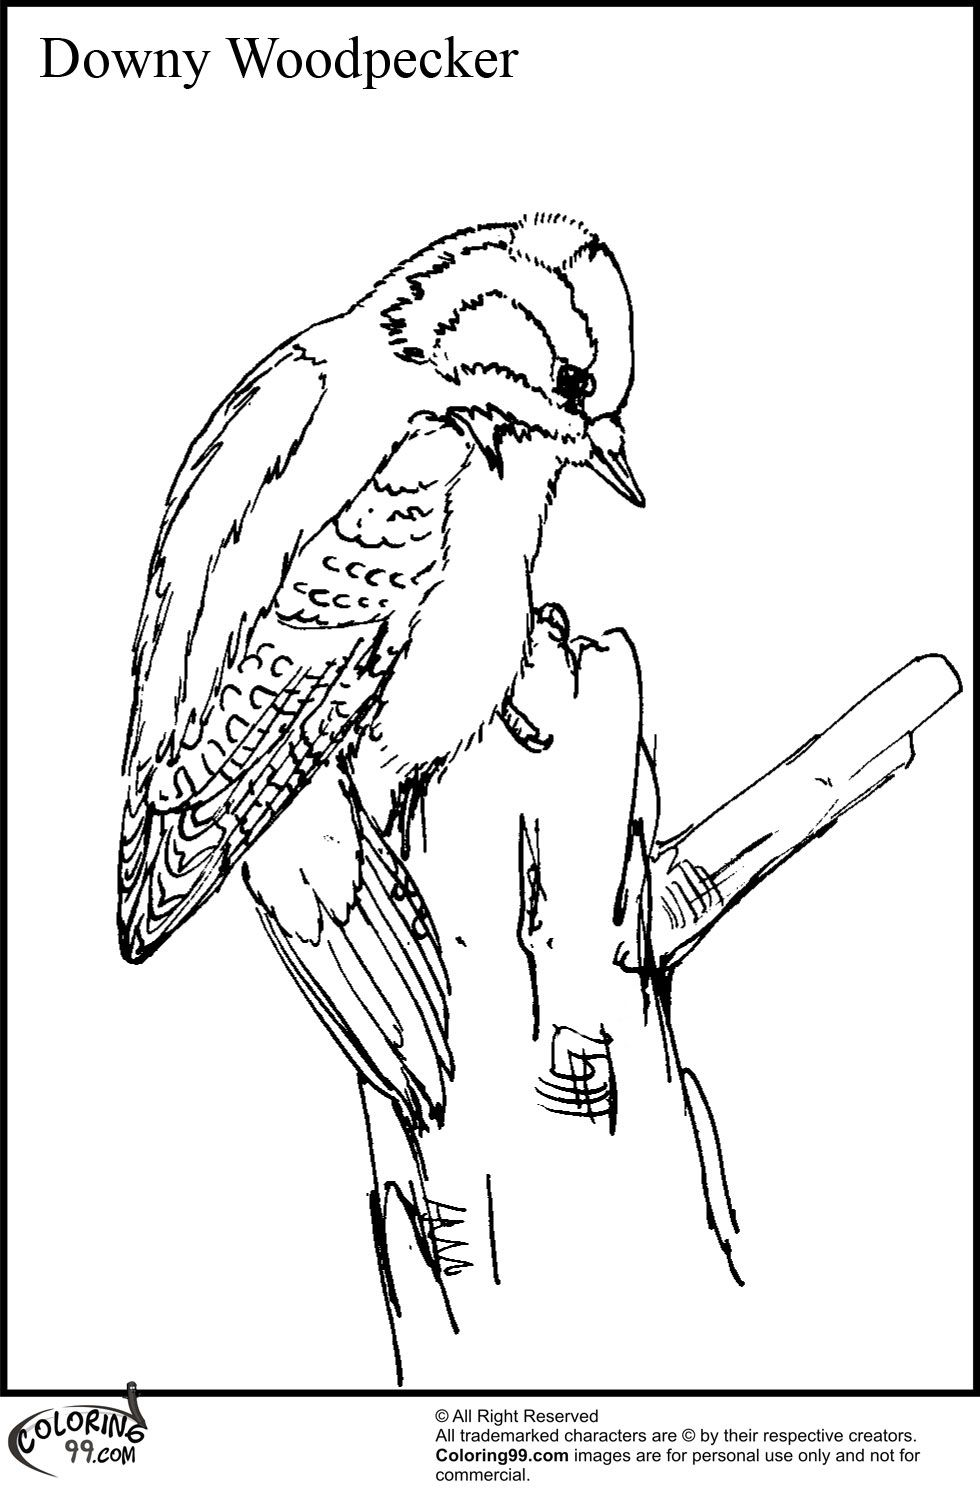 Downy Woodpecker Coloring Pages Jpg 980 1500 Coloring Pages